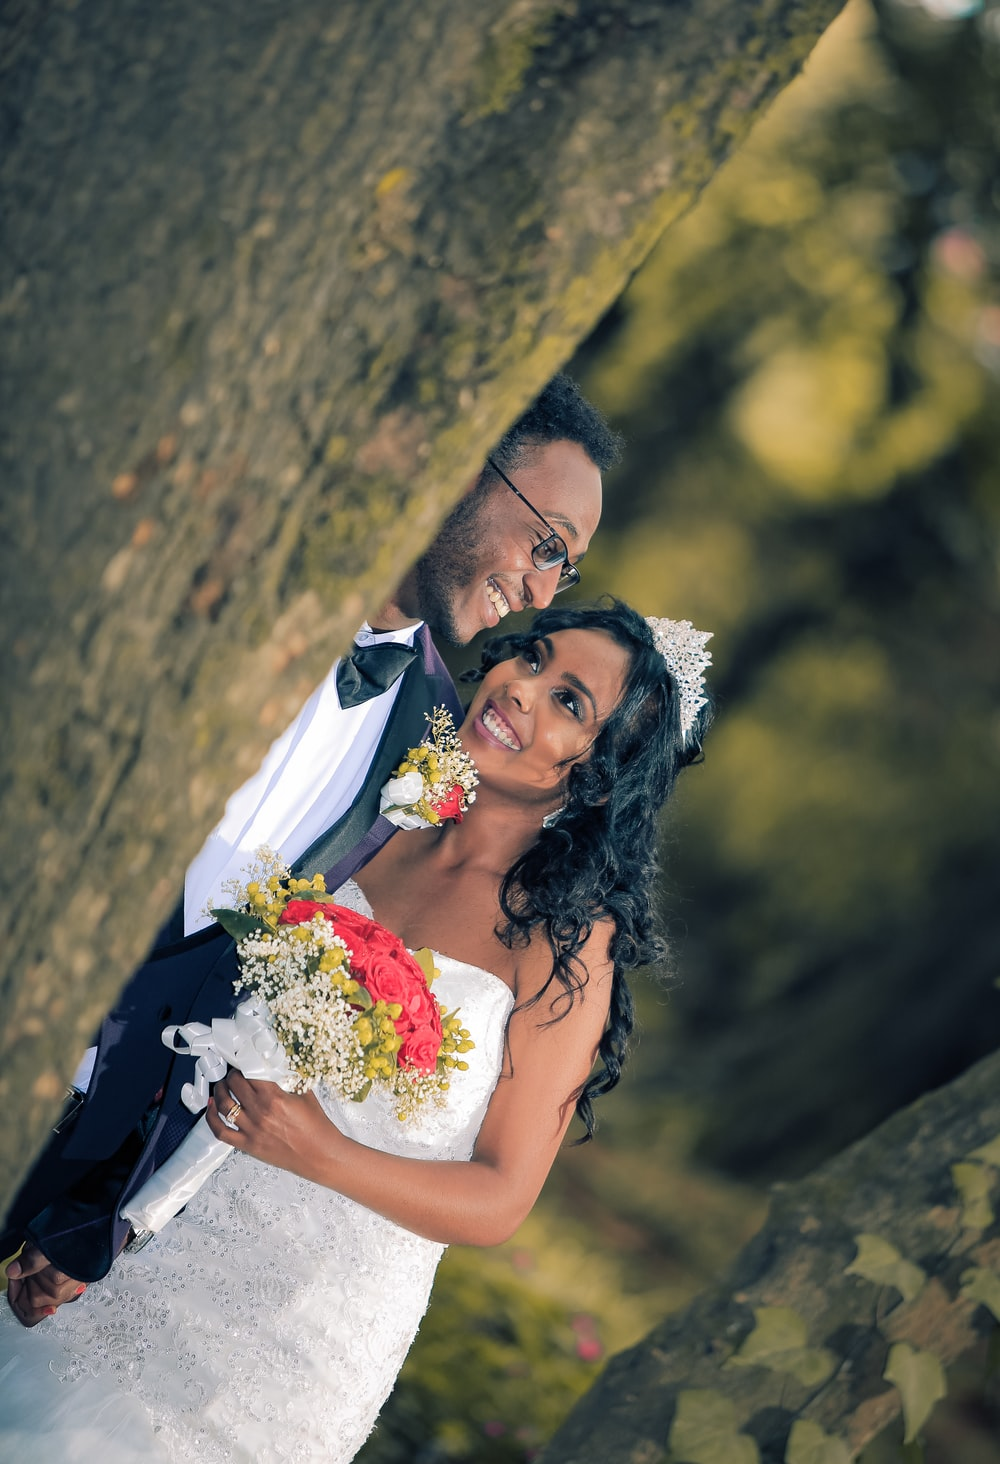 photo of couple wearing suit jacket and wedding gown